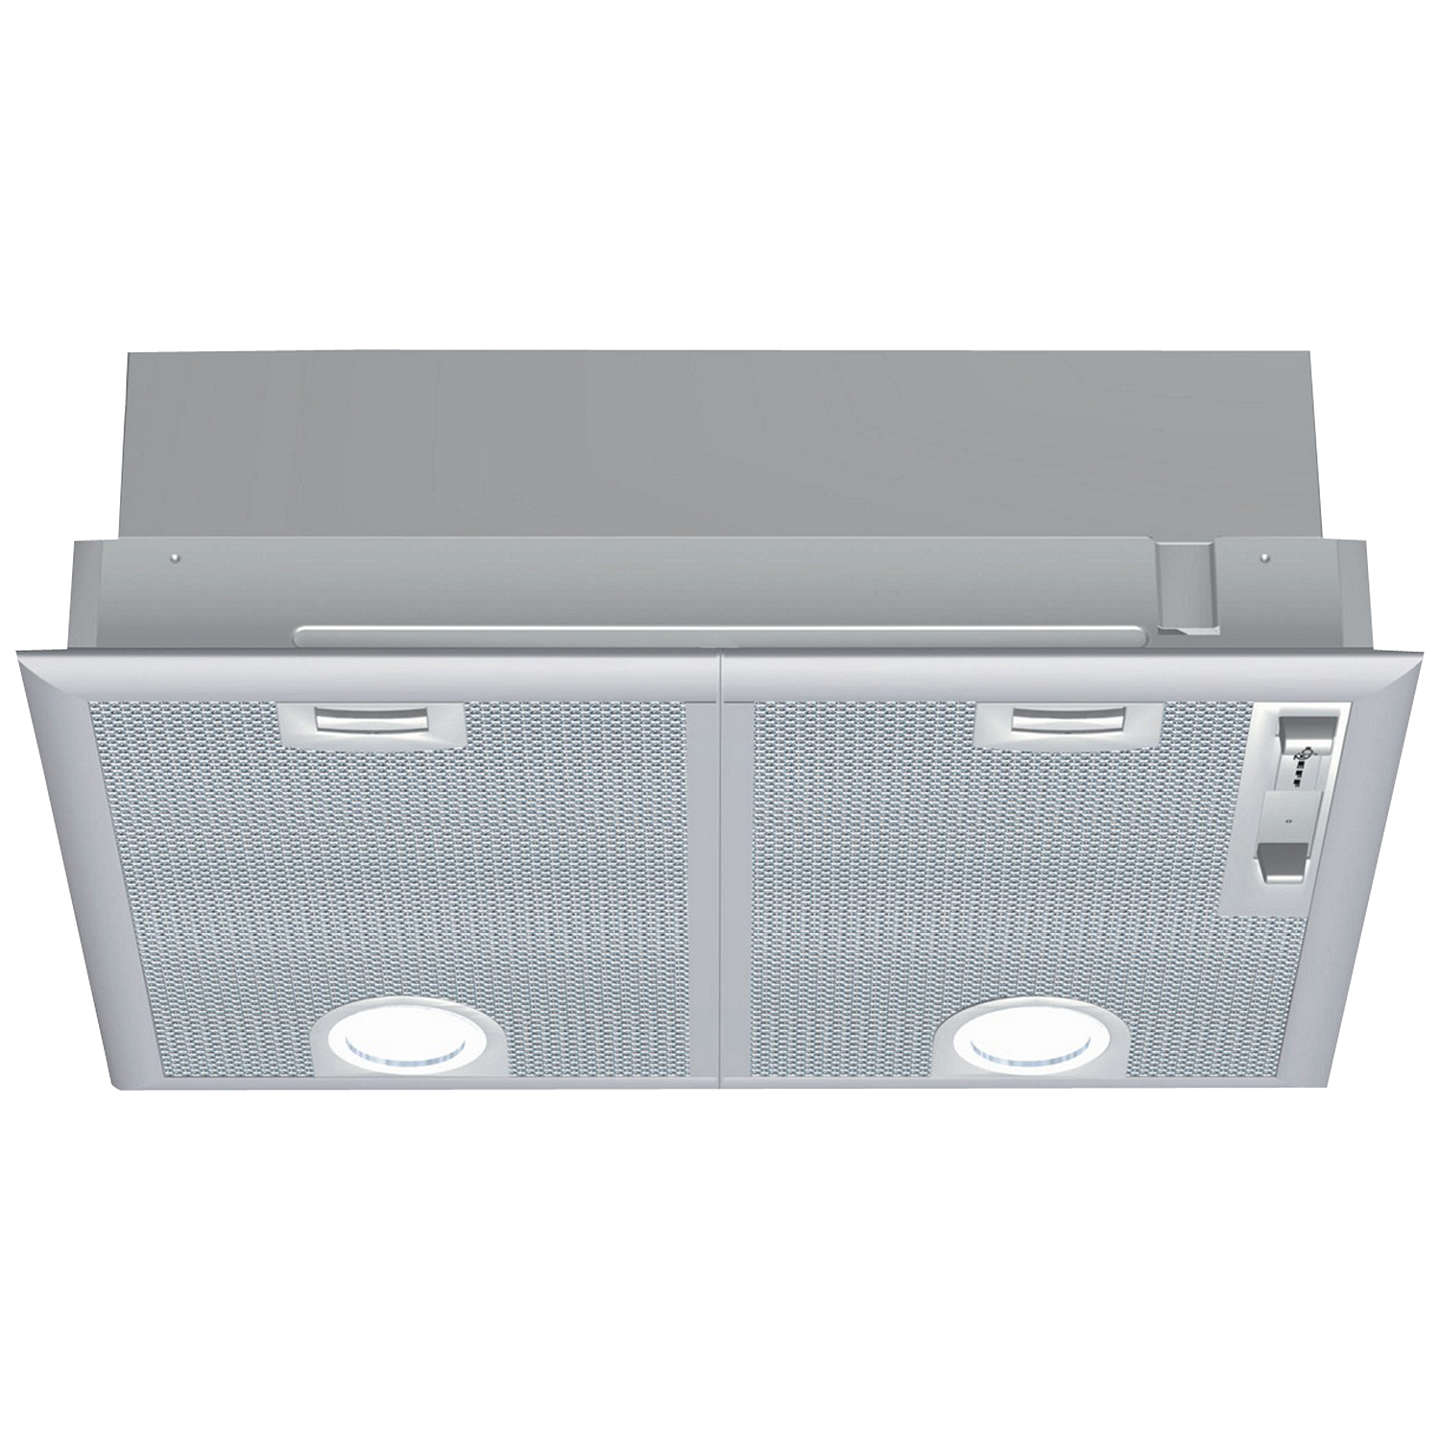 BuyNeff D5655X0GB Canopy Hood, Silver Online at johnlewis.com